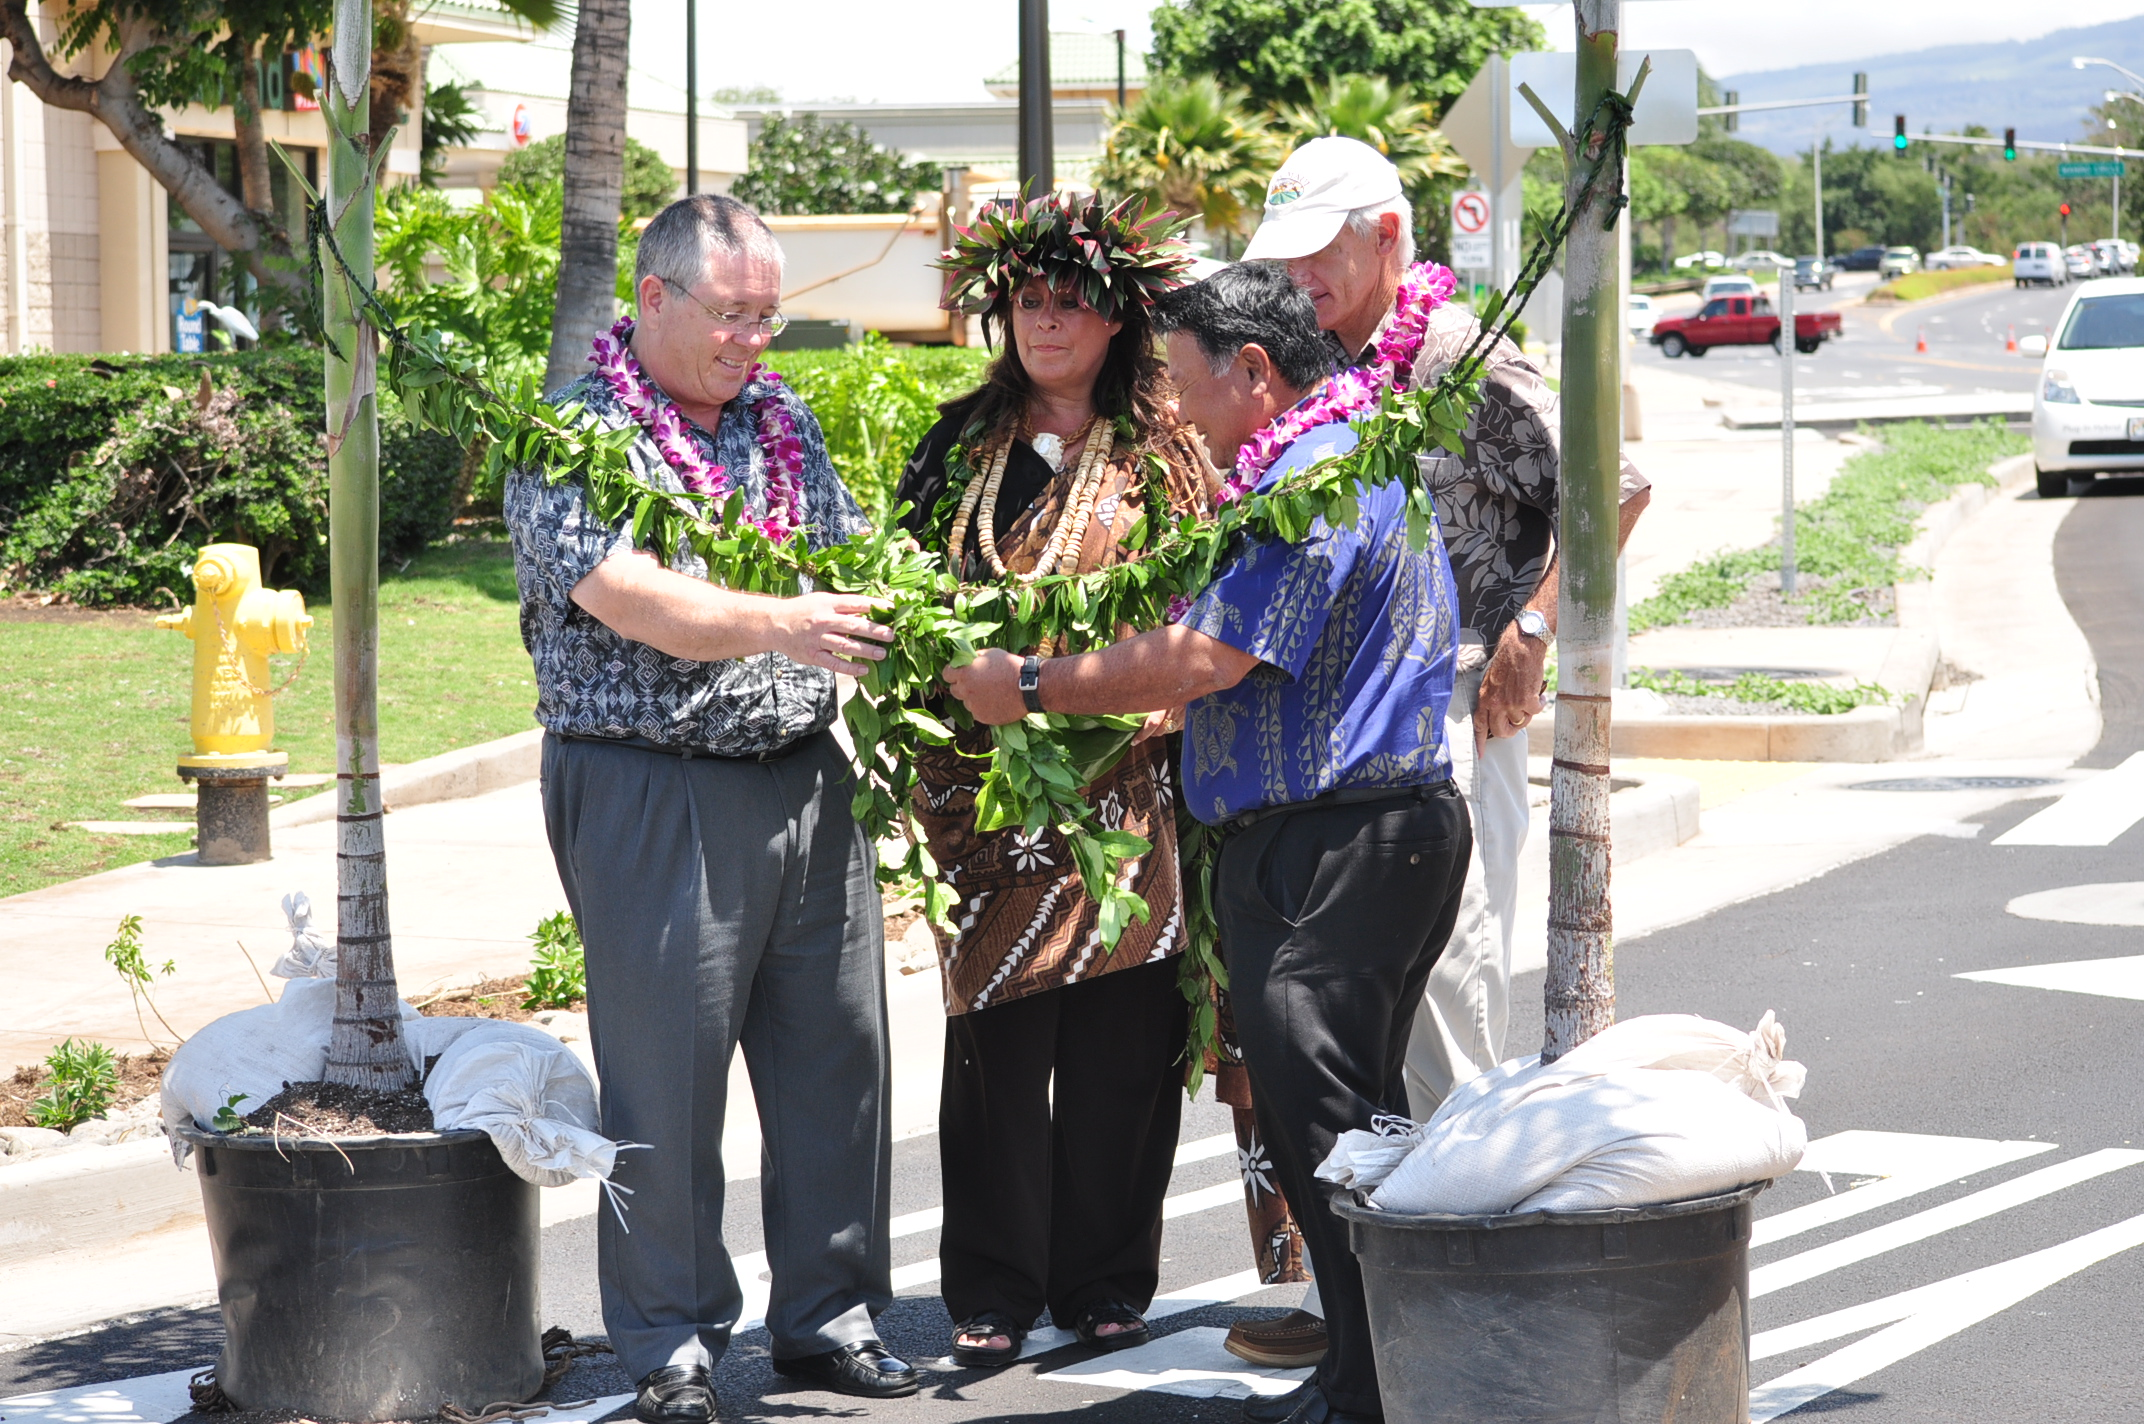 (L-R) Council member Don Couch, Kahu Alalani Hill, Mayor Alan Arakawa, and Public Works Director David Goode - Untying of the Maile lei to officially open the Kihei Roundabout at the intersection Pi`ikea Avenue and Liloa Drive.